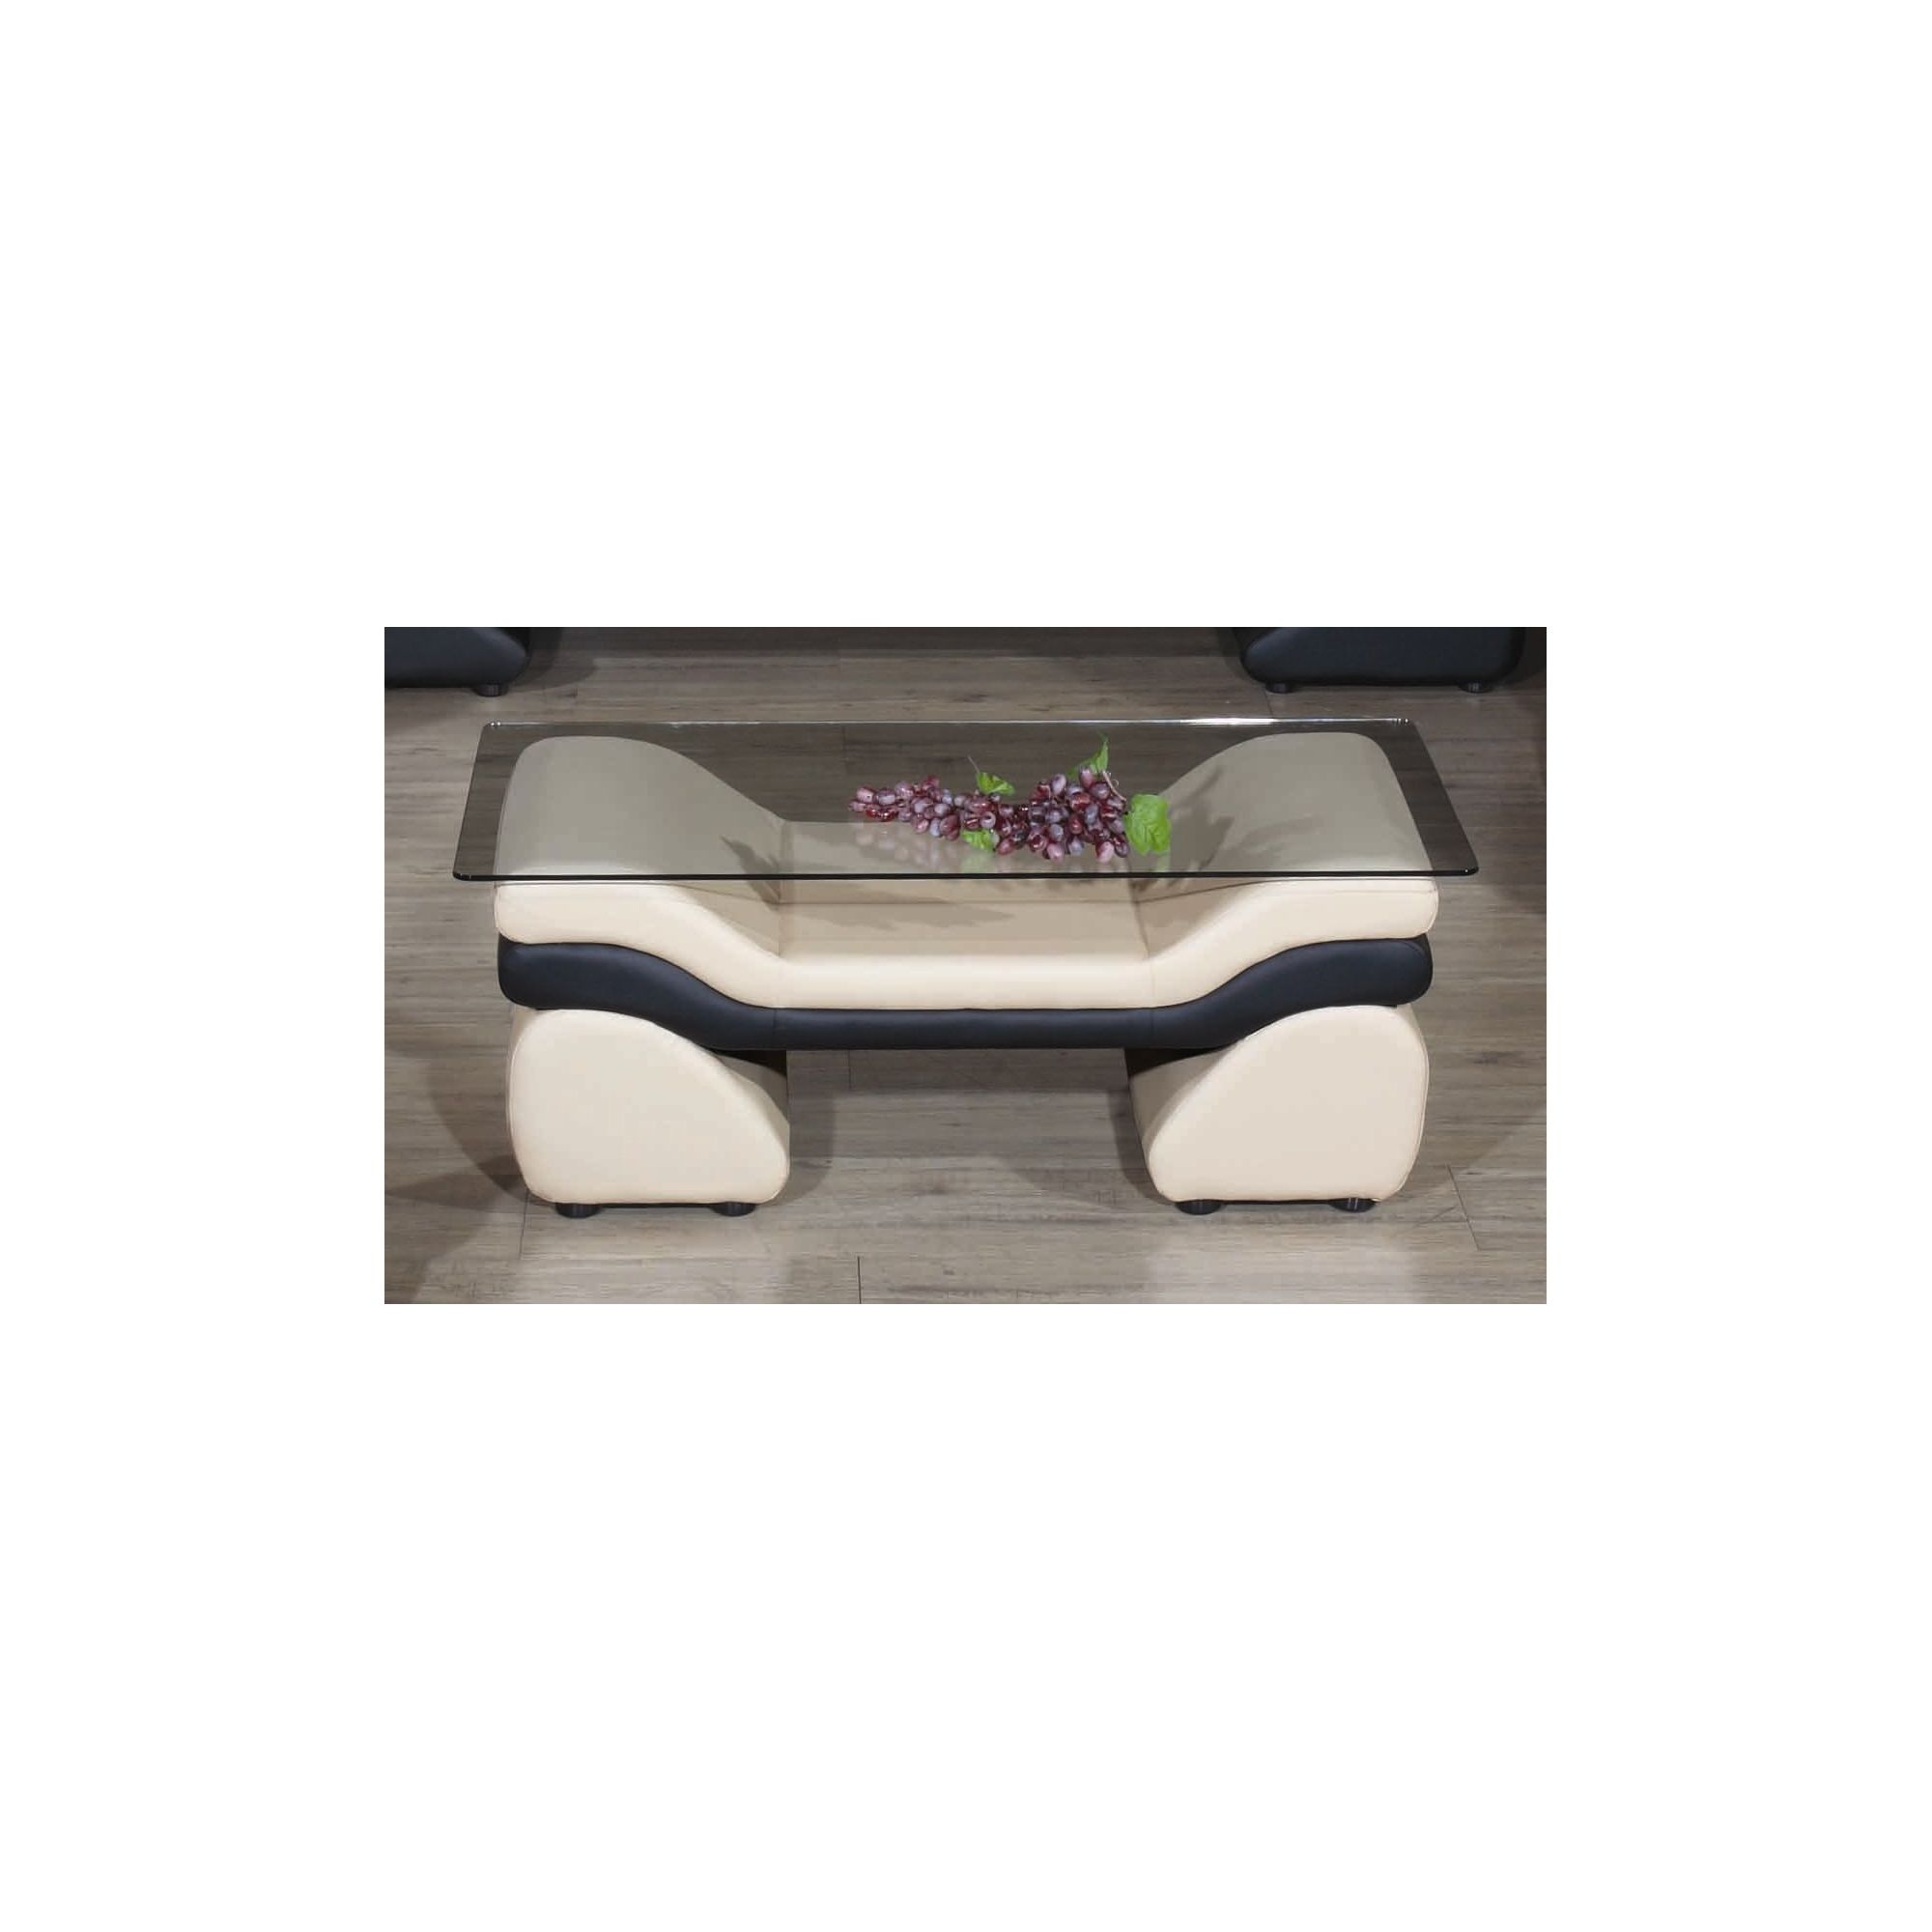 JPL Furniture Miami Coffee Table - Black / Rose White at Tesco Direct